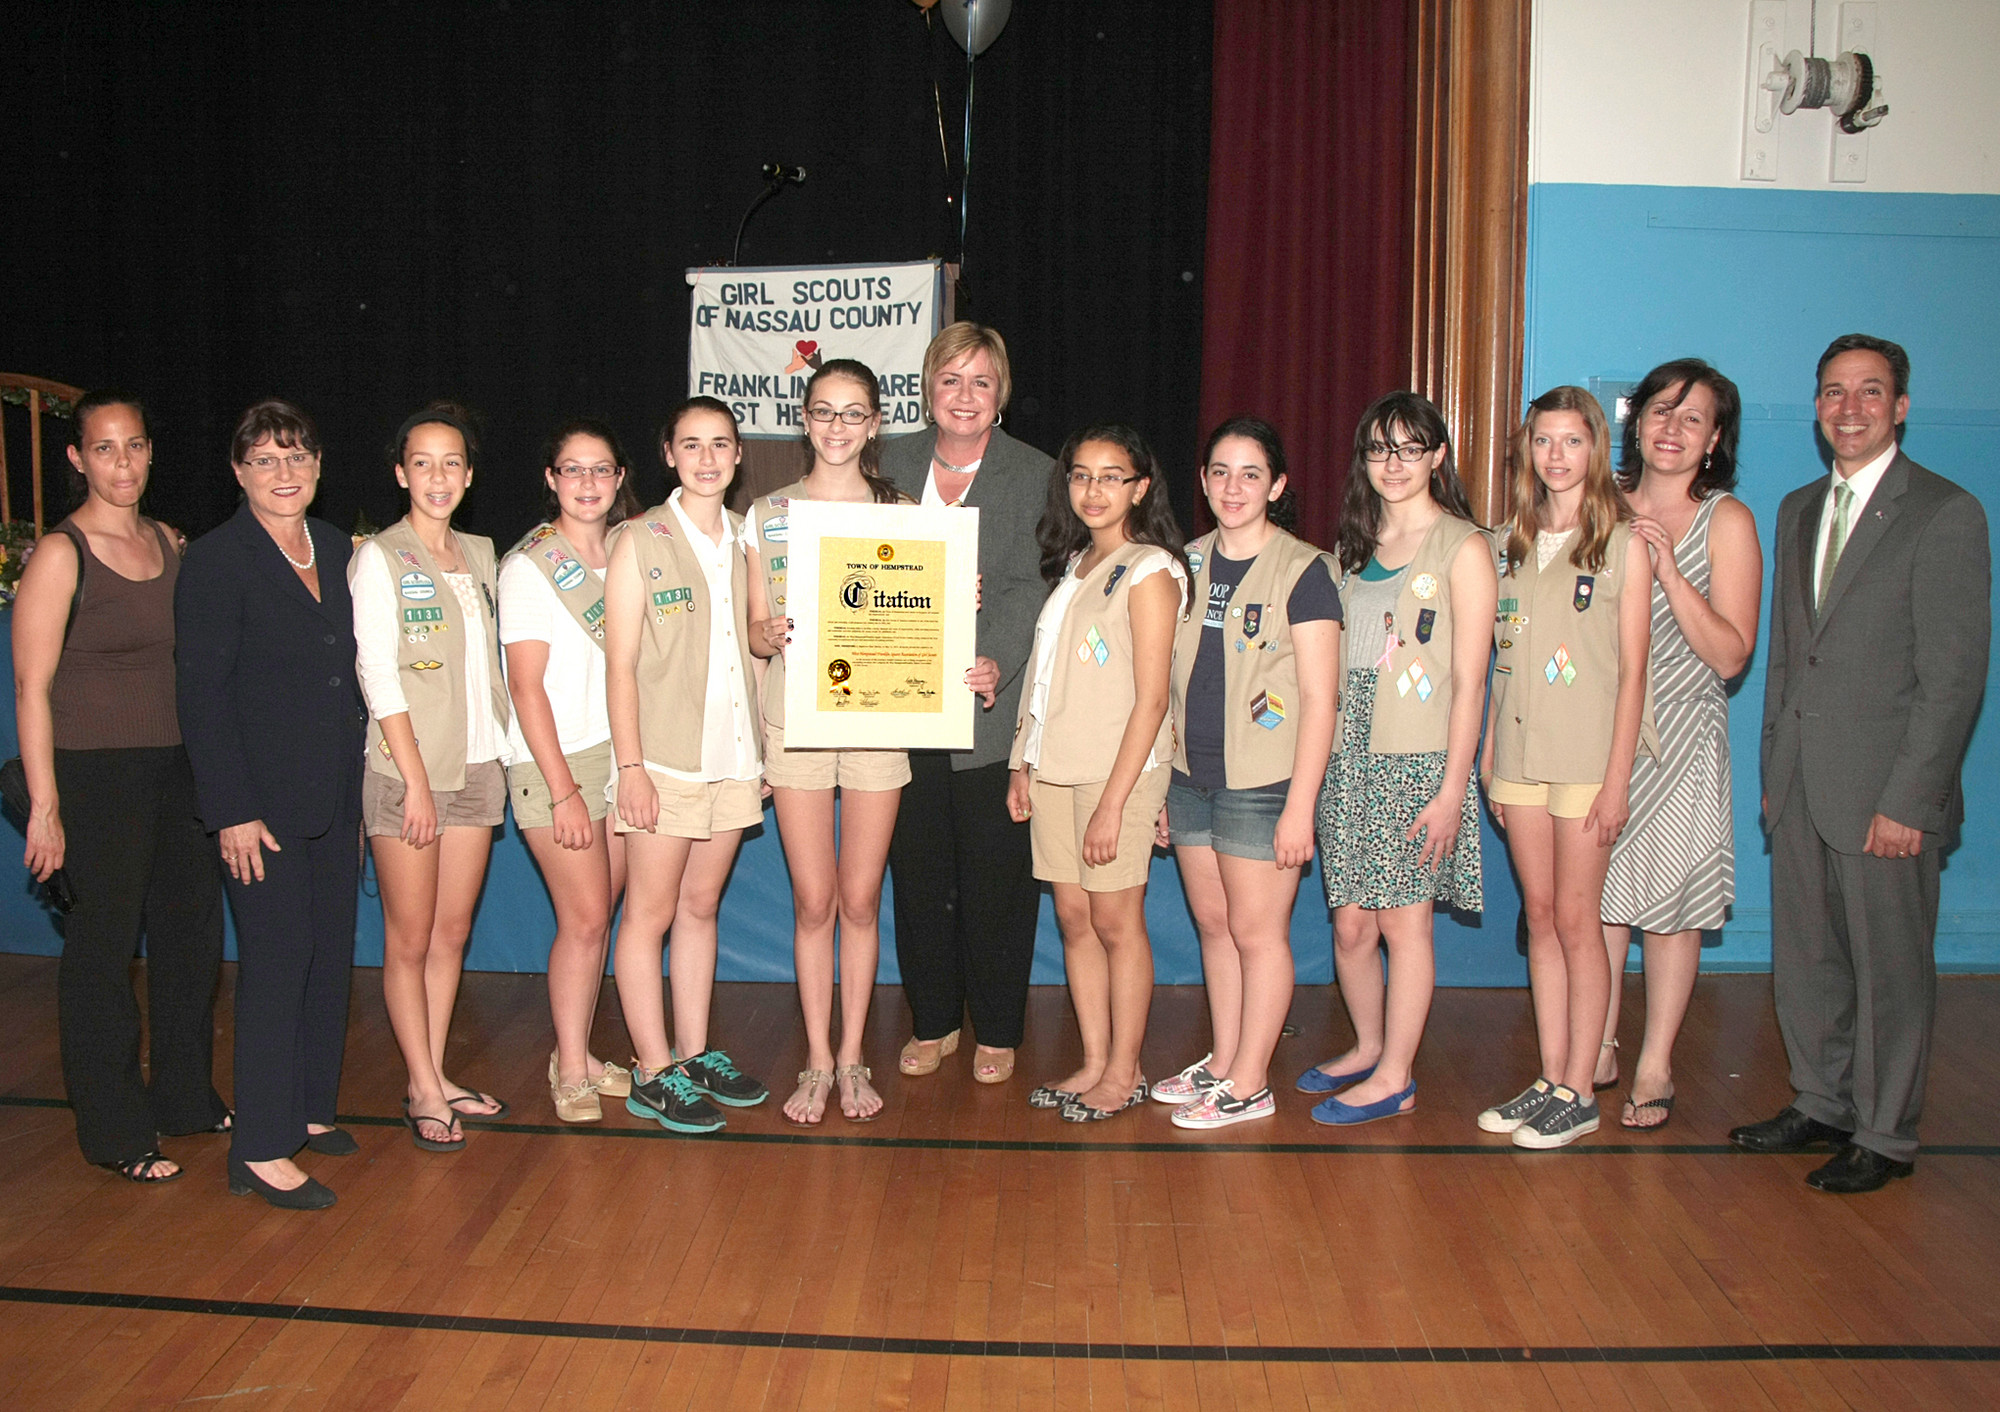 New York State Senator Jack Martins, Nassau County Clerk Maureen O'Connell, Town of Hempstead Supervisor Kate Murray with Troop 1345 Leader Carol Anne Stiklickas, Emily Stiklickas and Gold Awardee Sara Stiklickas.